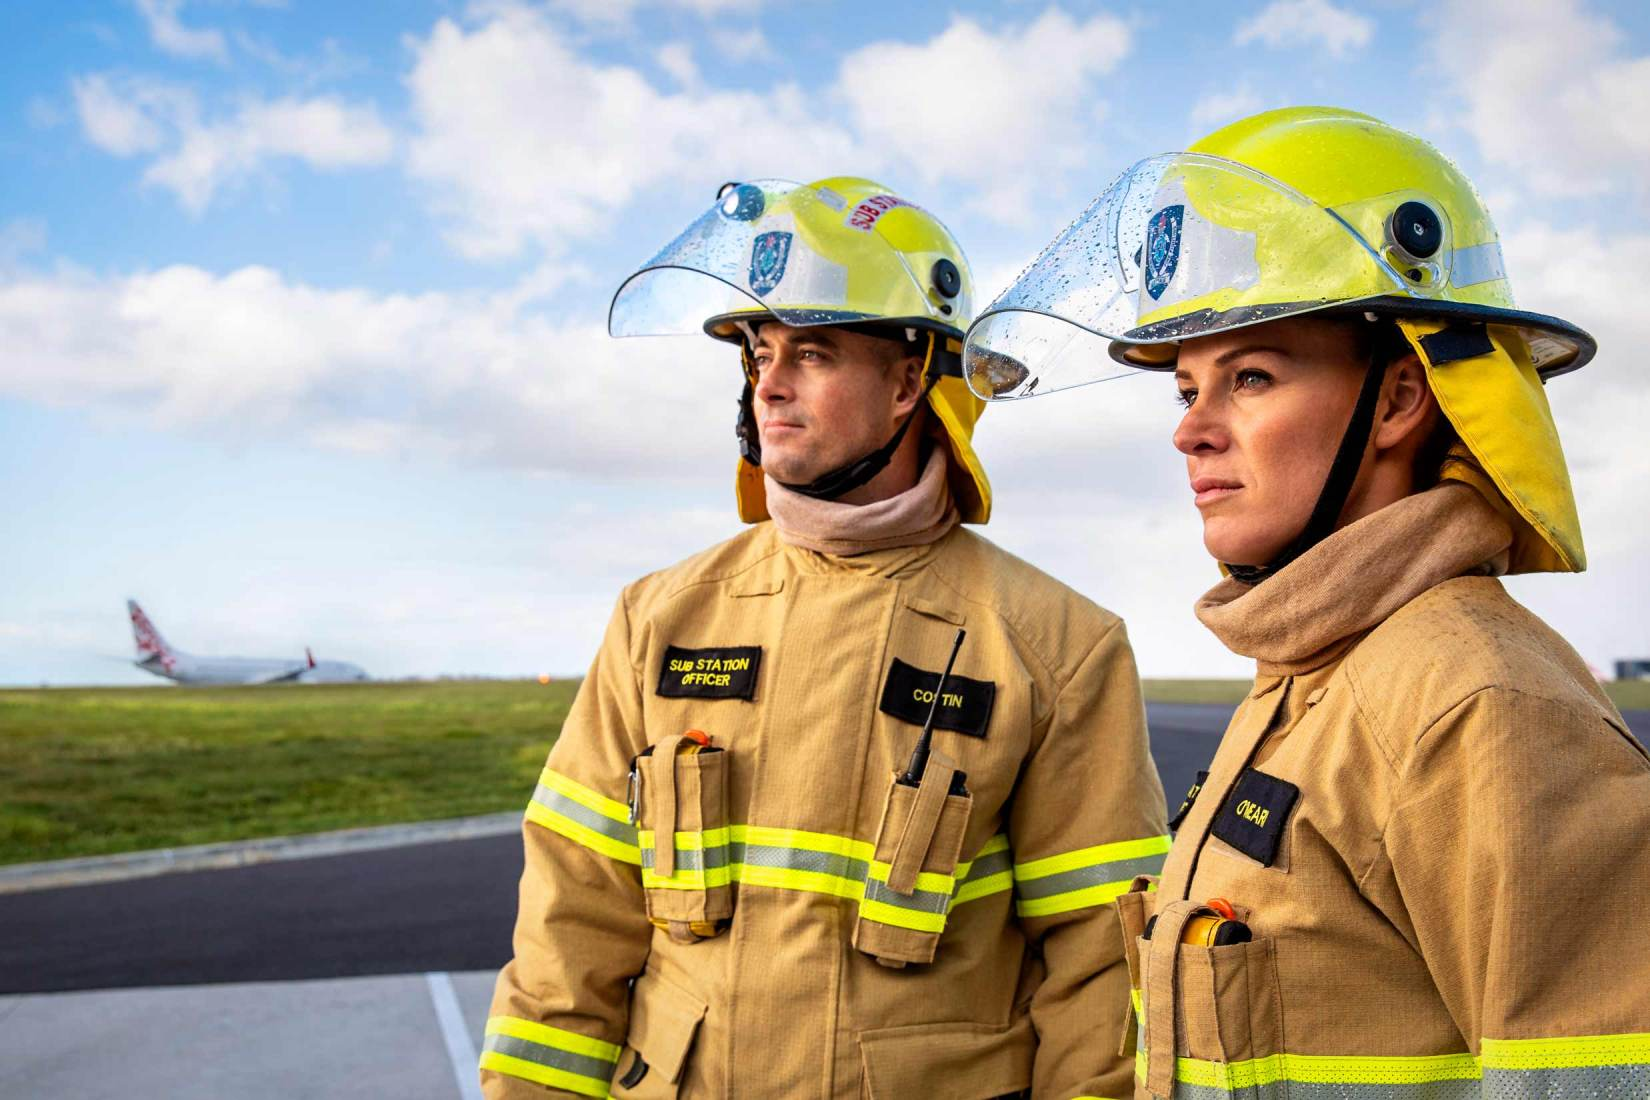 18106-3717-Image-Workshop-Melbourne-firefighter-fire-fighting-photography